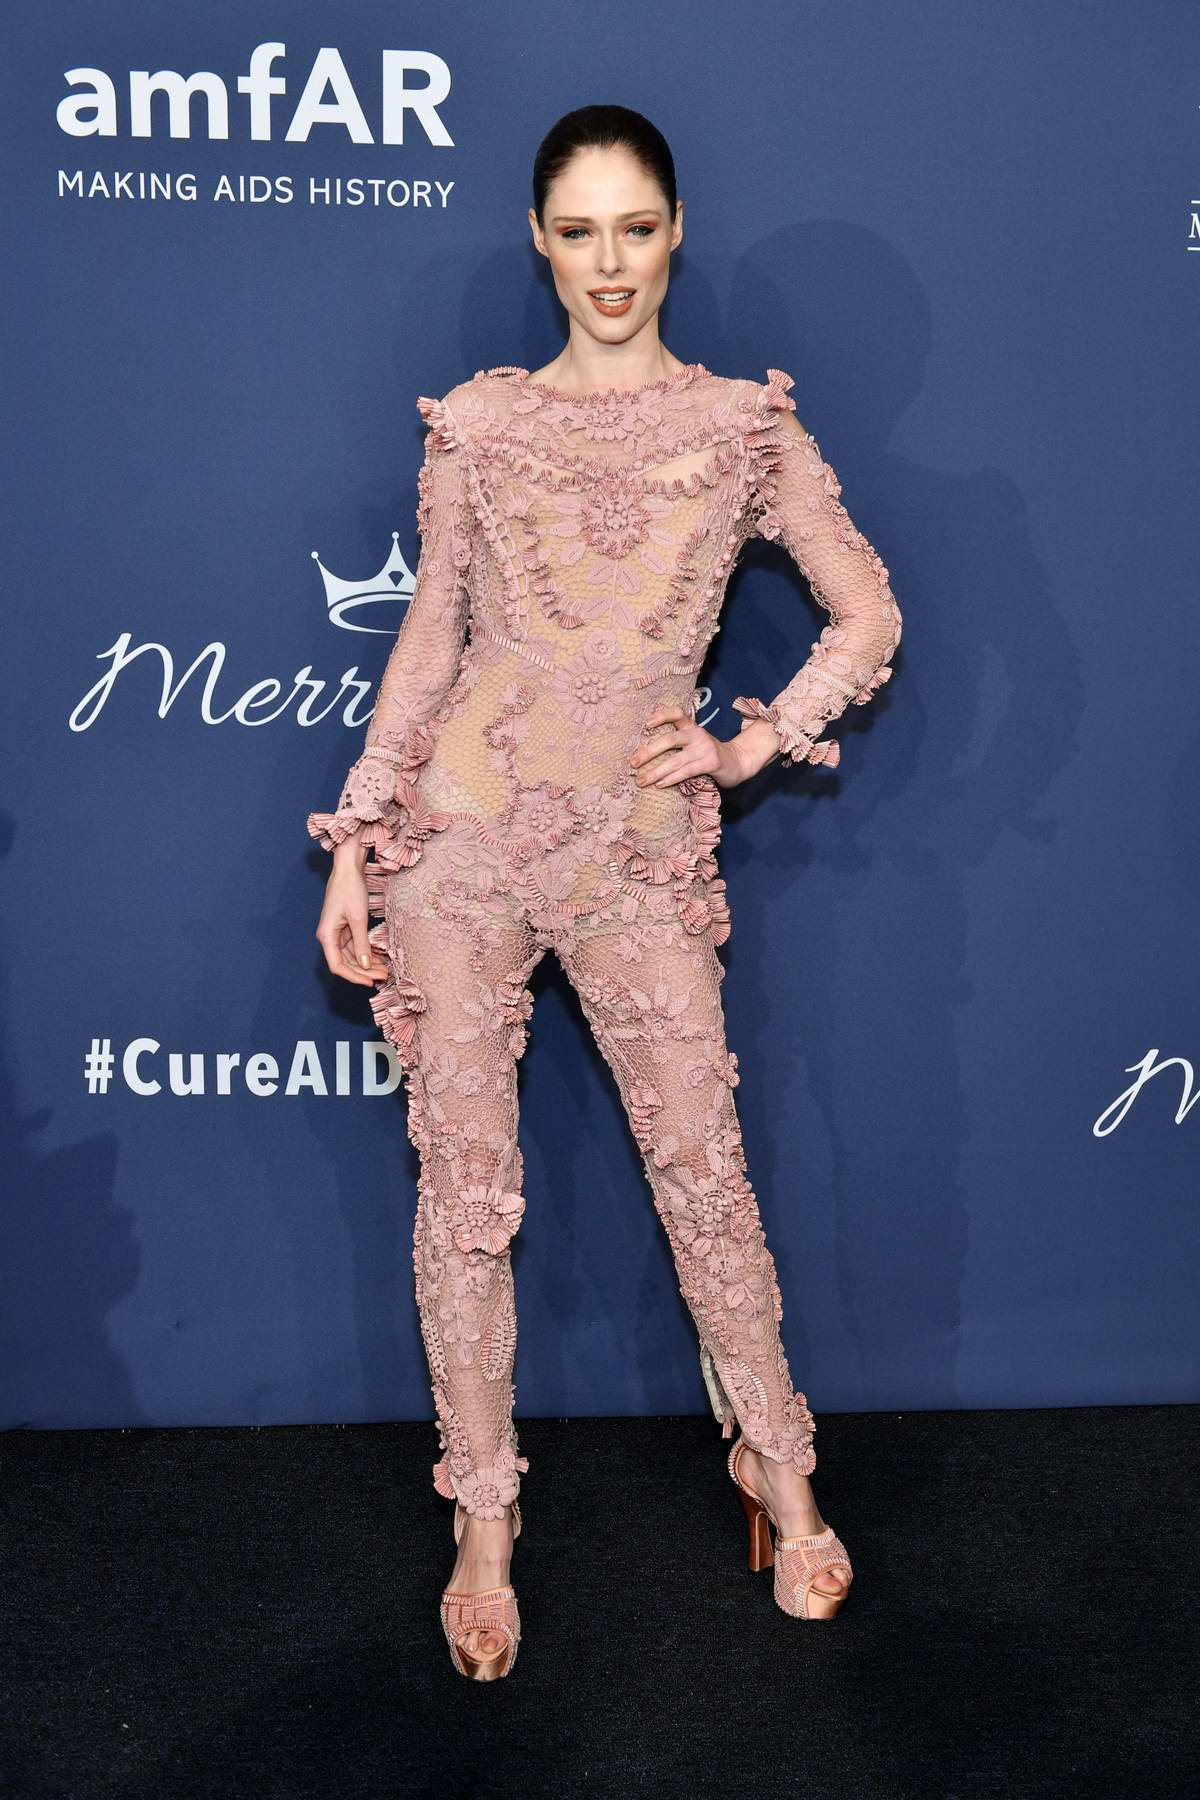 Coco Rocha attends the 22nd annual amfAR Gala Benefit for AIDS Research in New York City